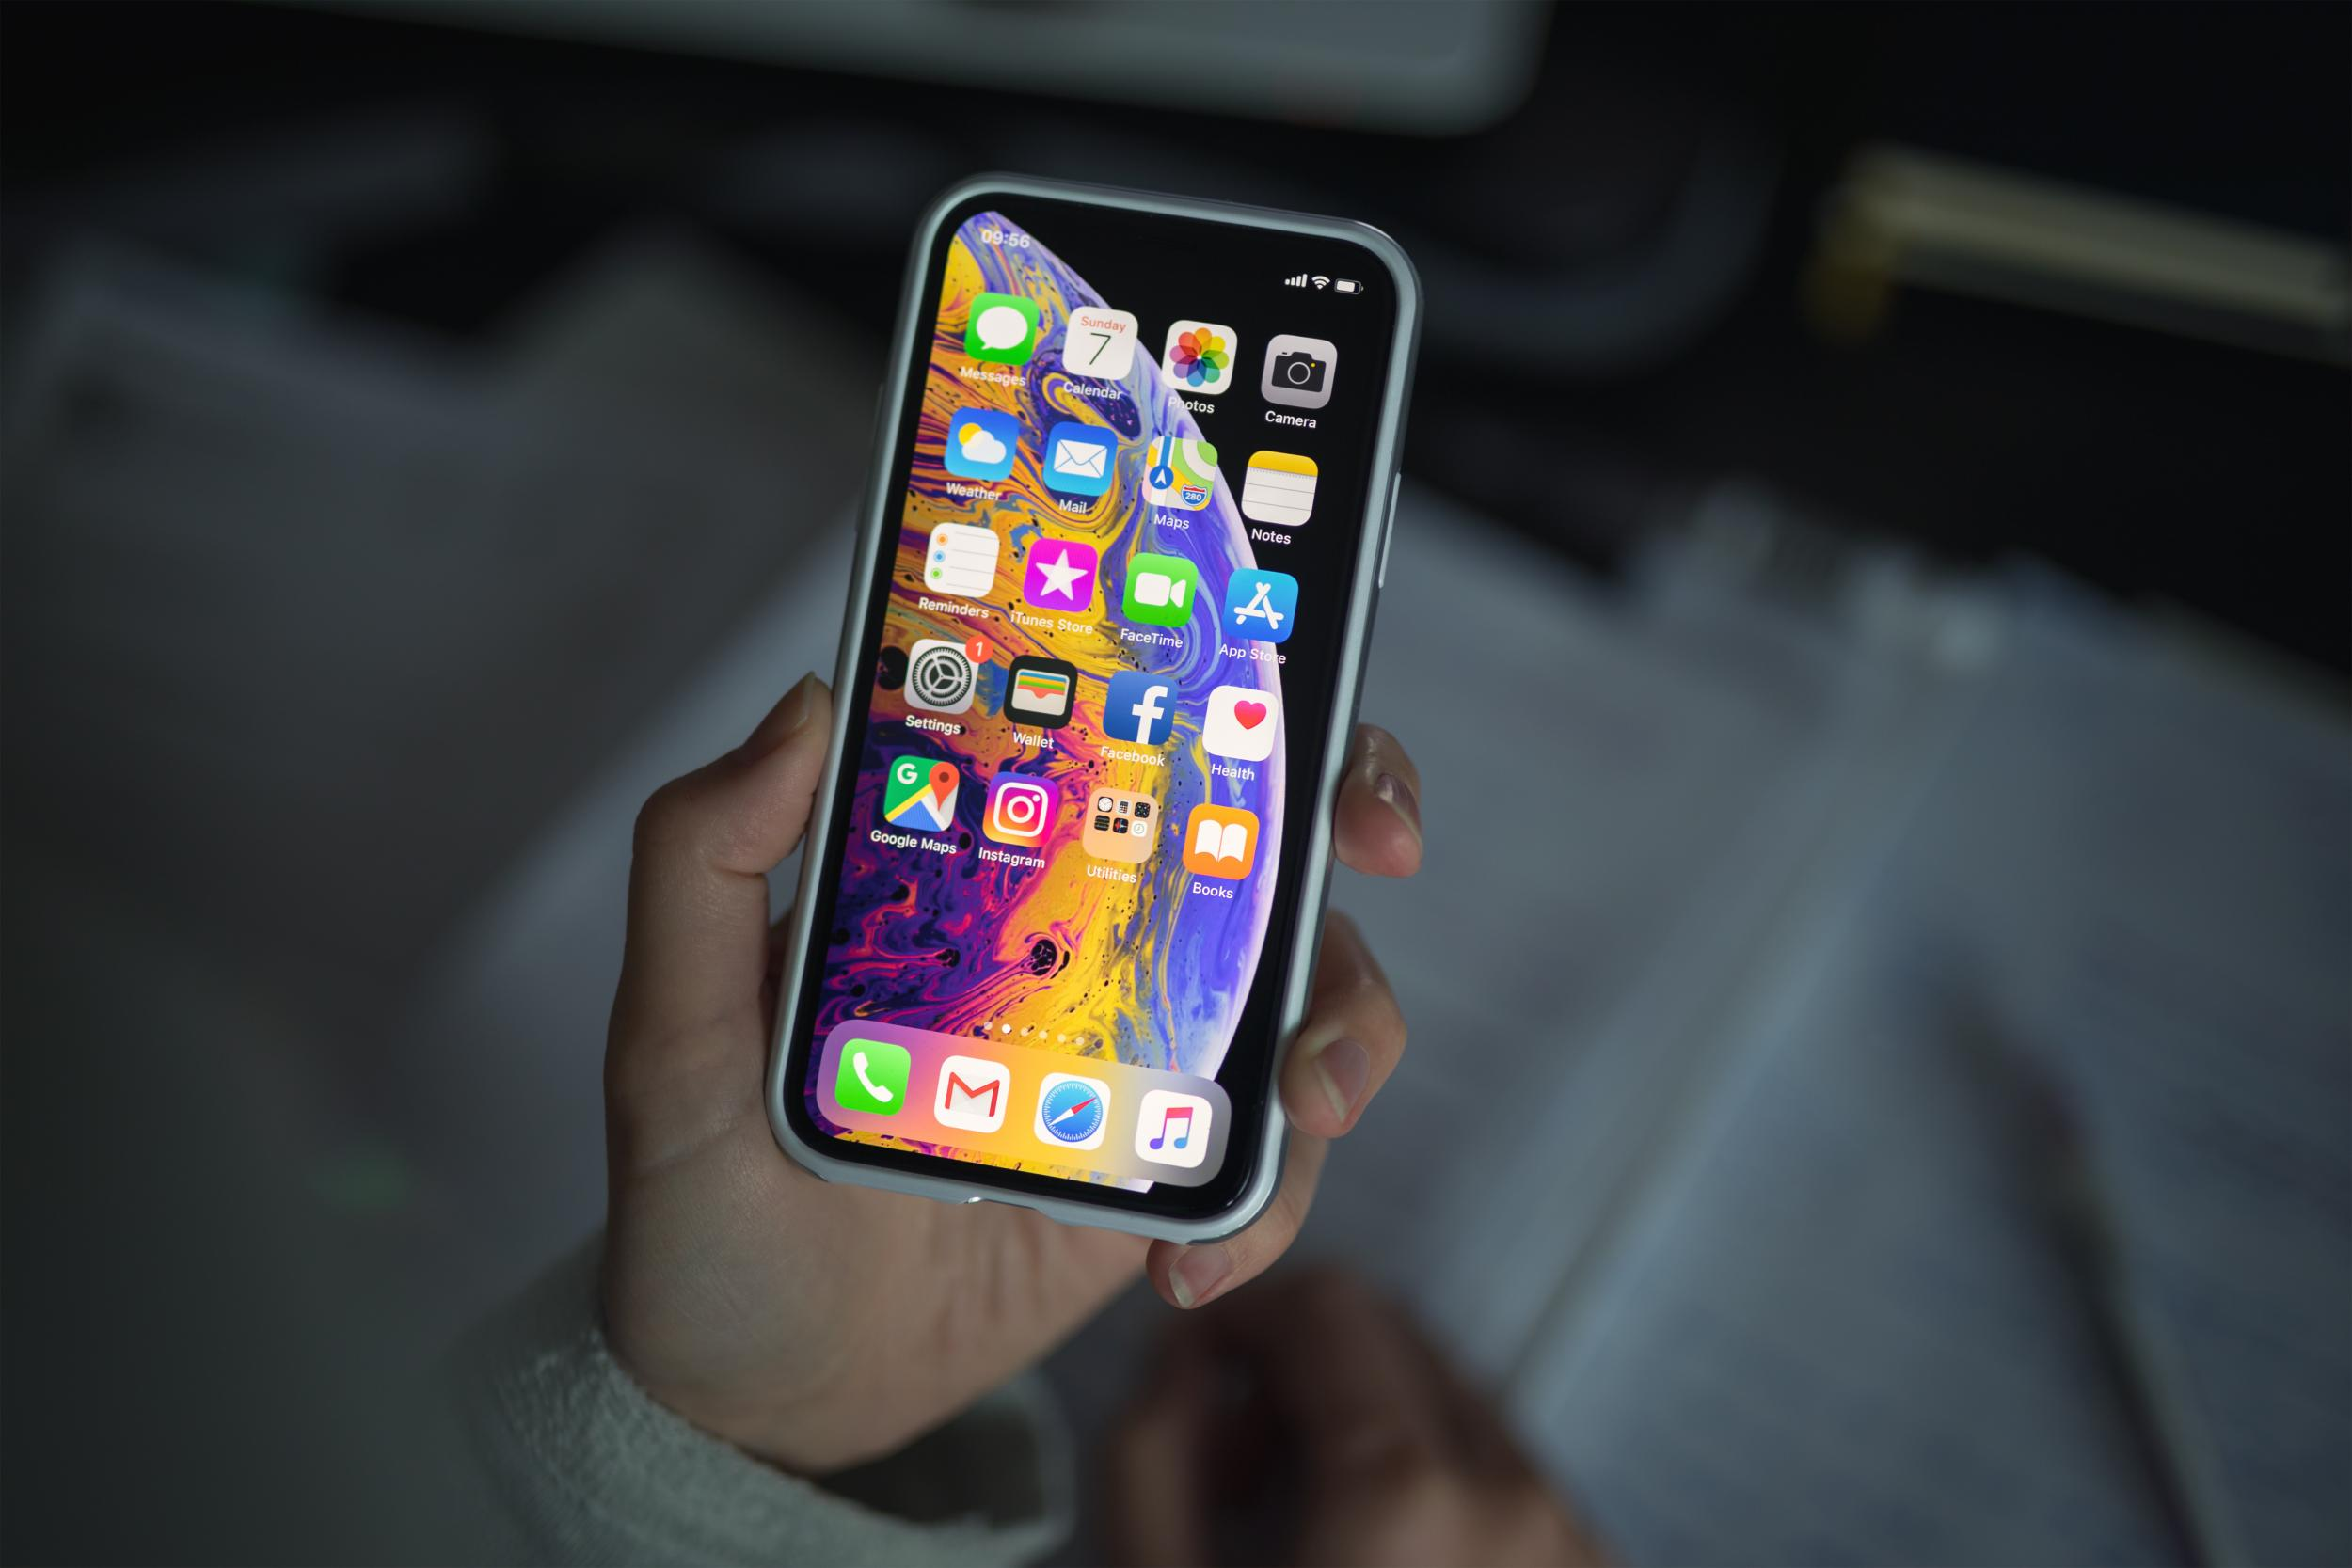 iOS 14: Apple's iPhone software update has been available to hackers since February